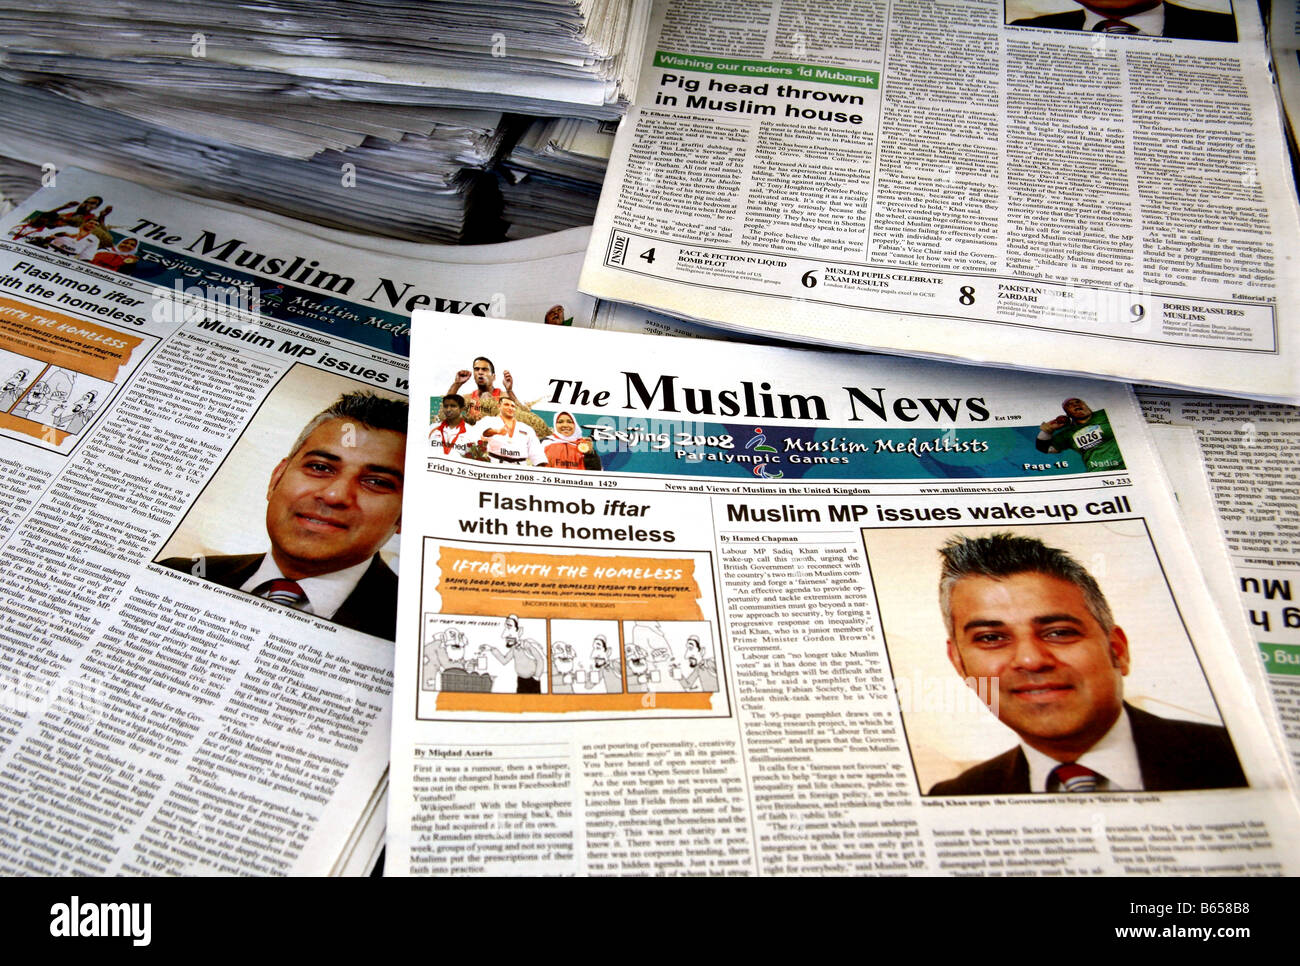 Copies of The Muslim News newspaper for Muslims in the UK on sale in London - Stock Image